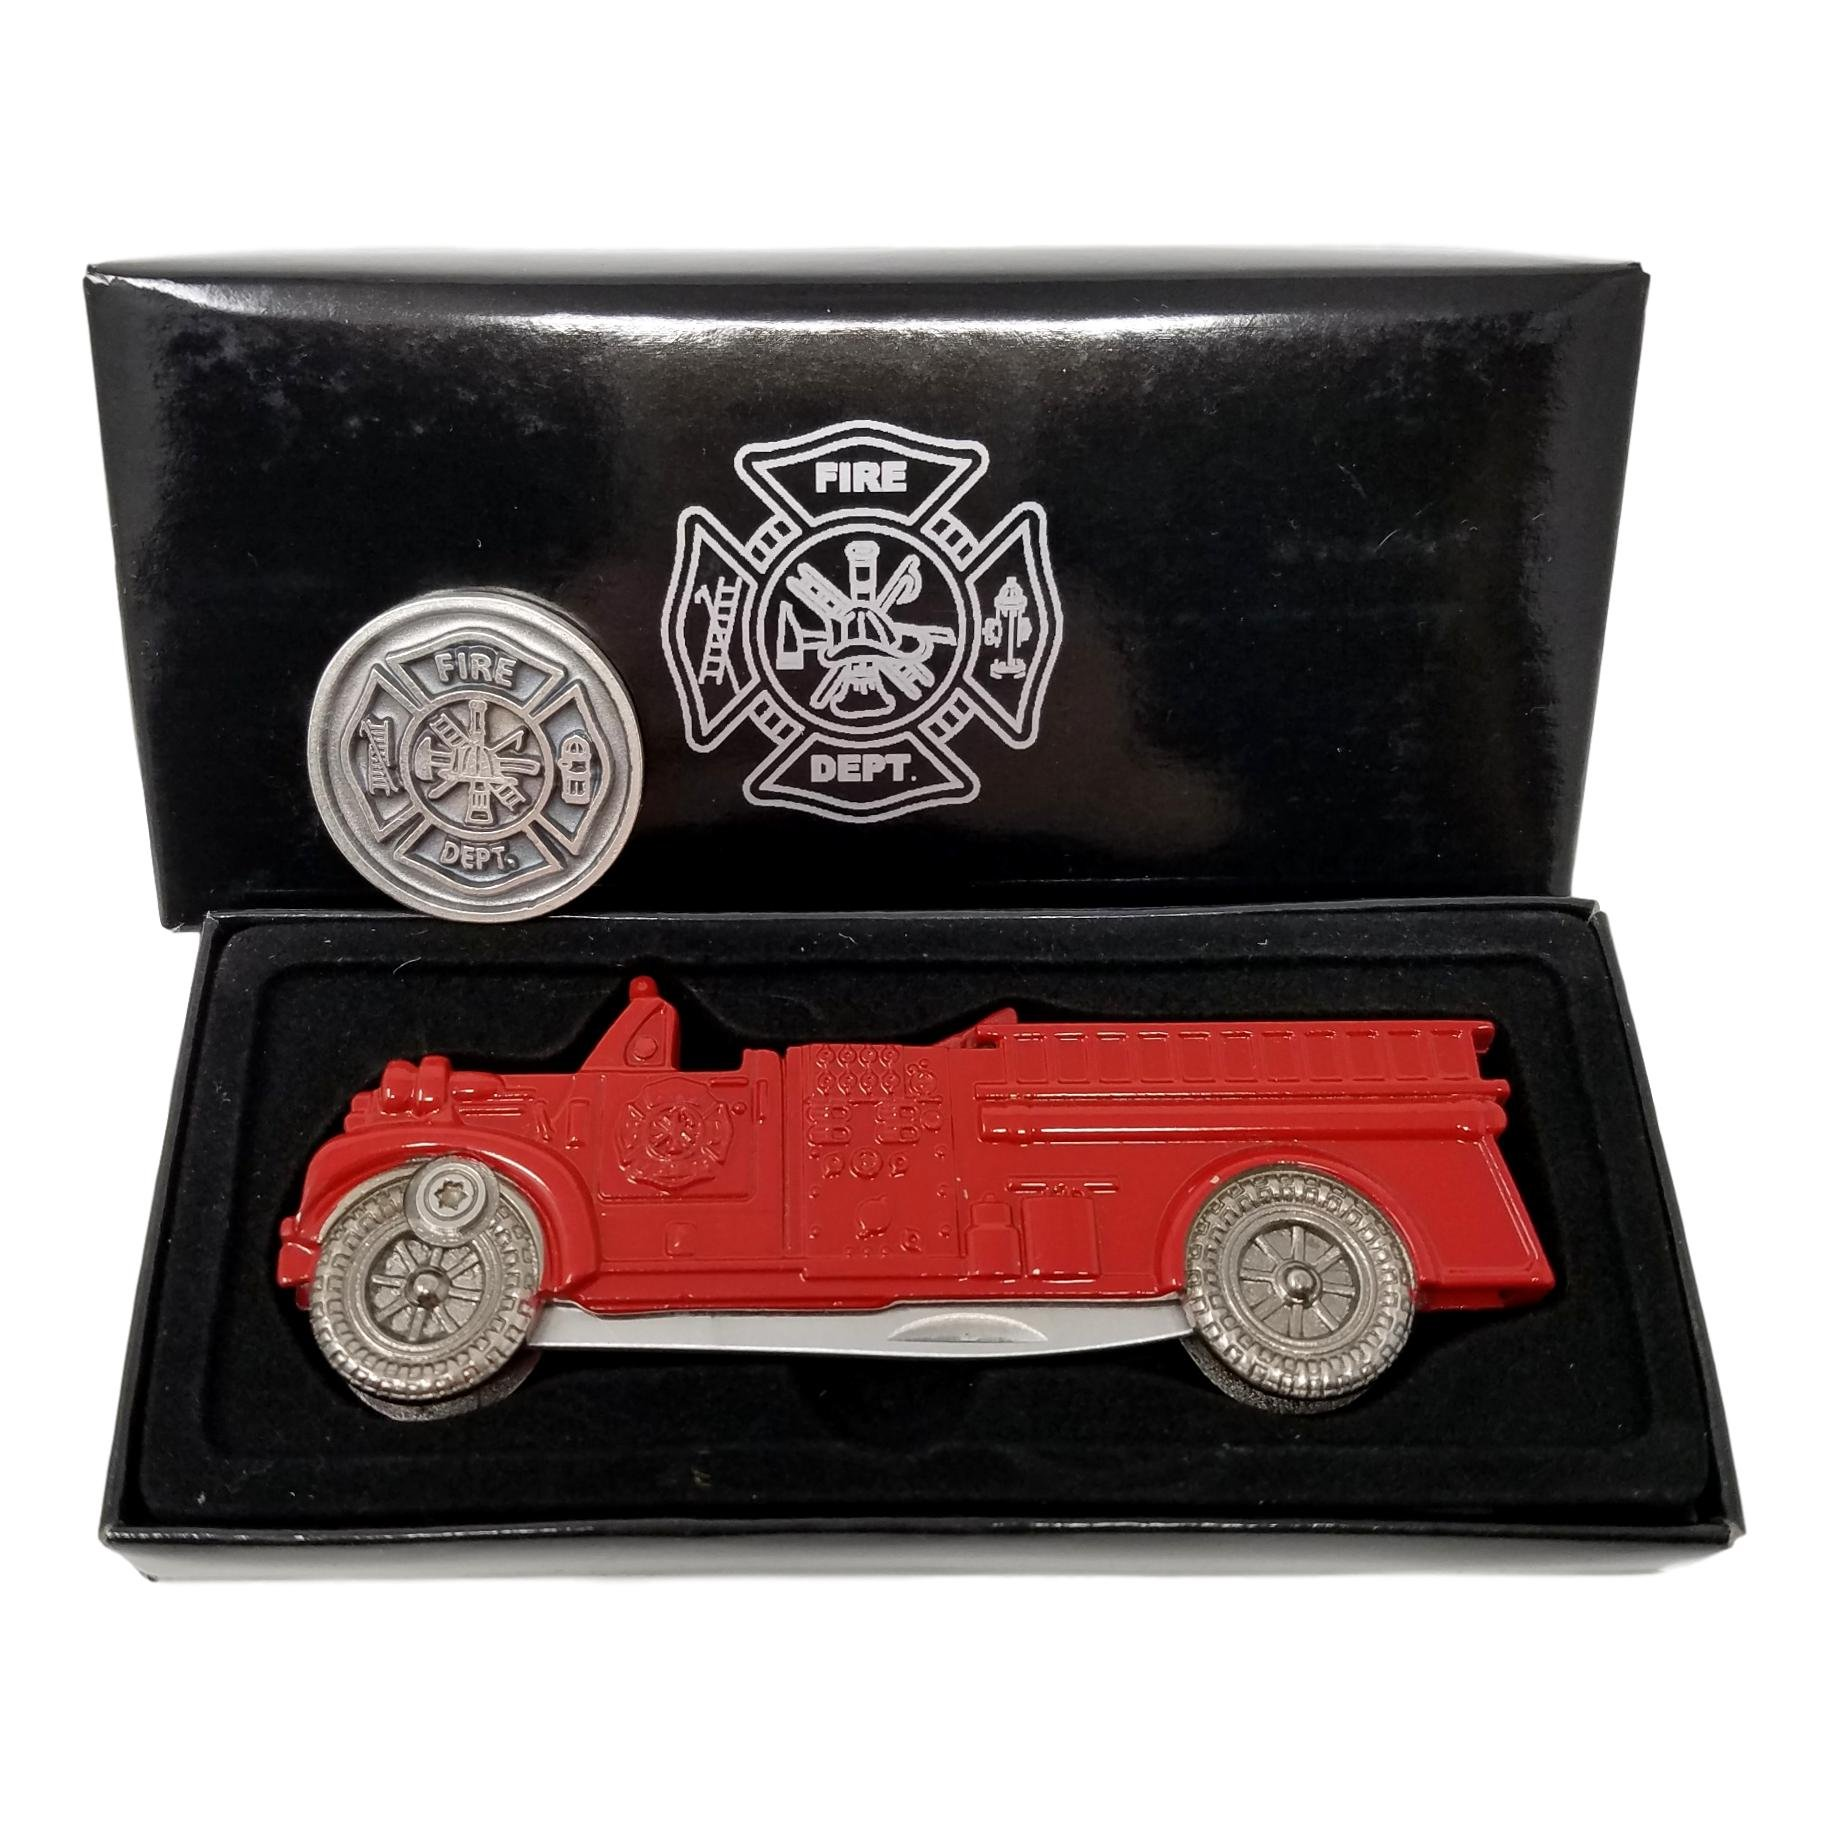 Firefighters Gifts For Men or Women - Firemans Gifts of Prayer Coin & Firetruck Pocket Knife Bundle